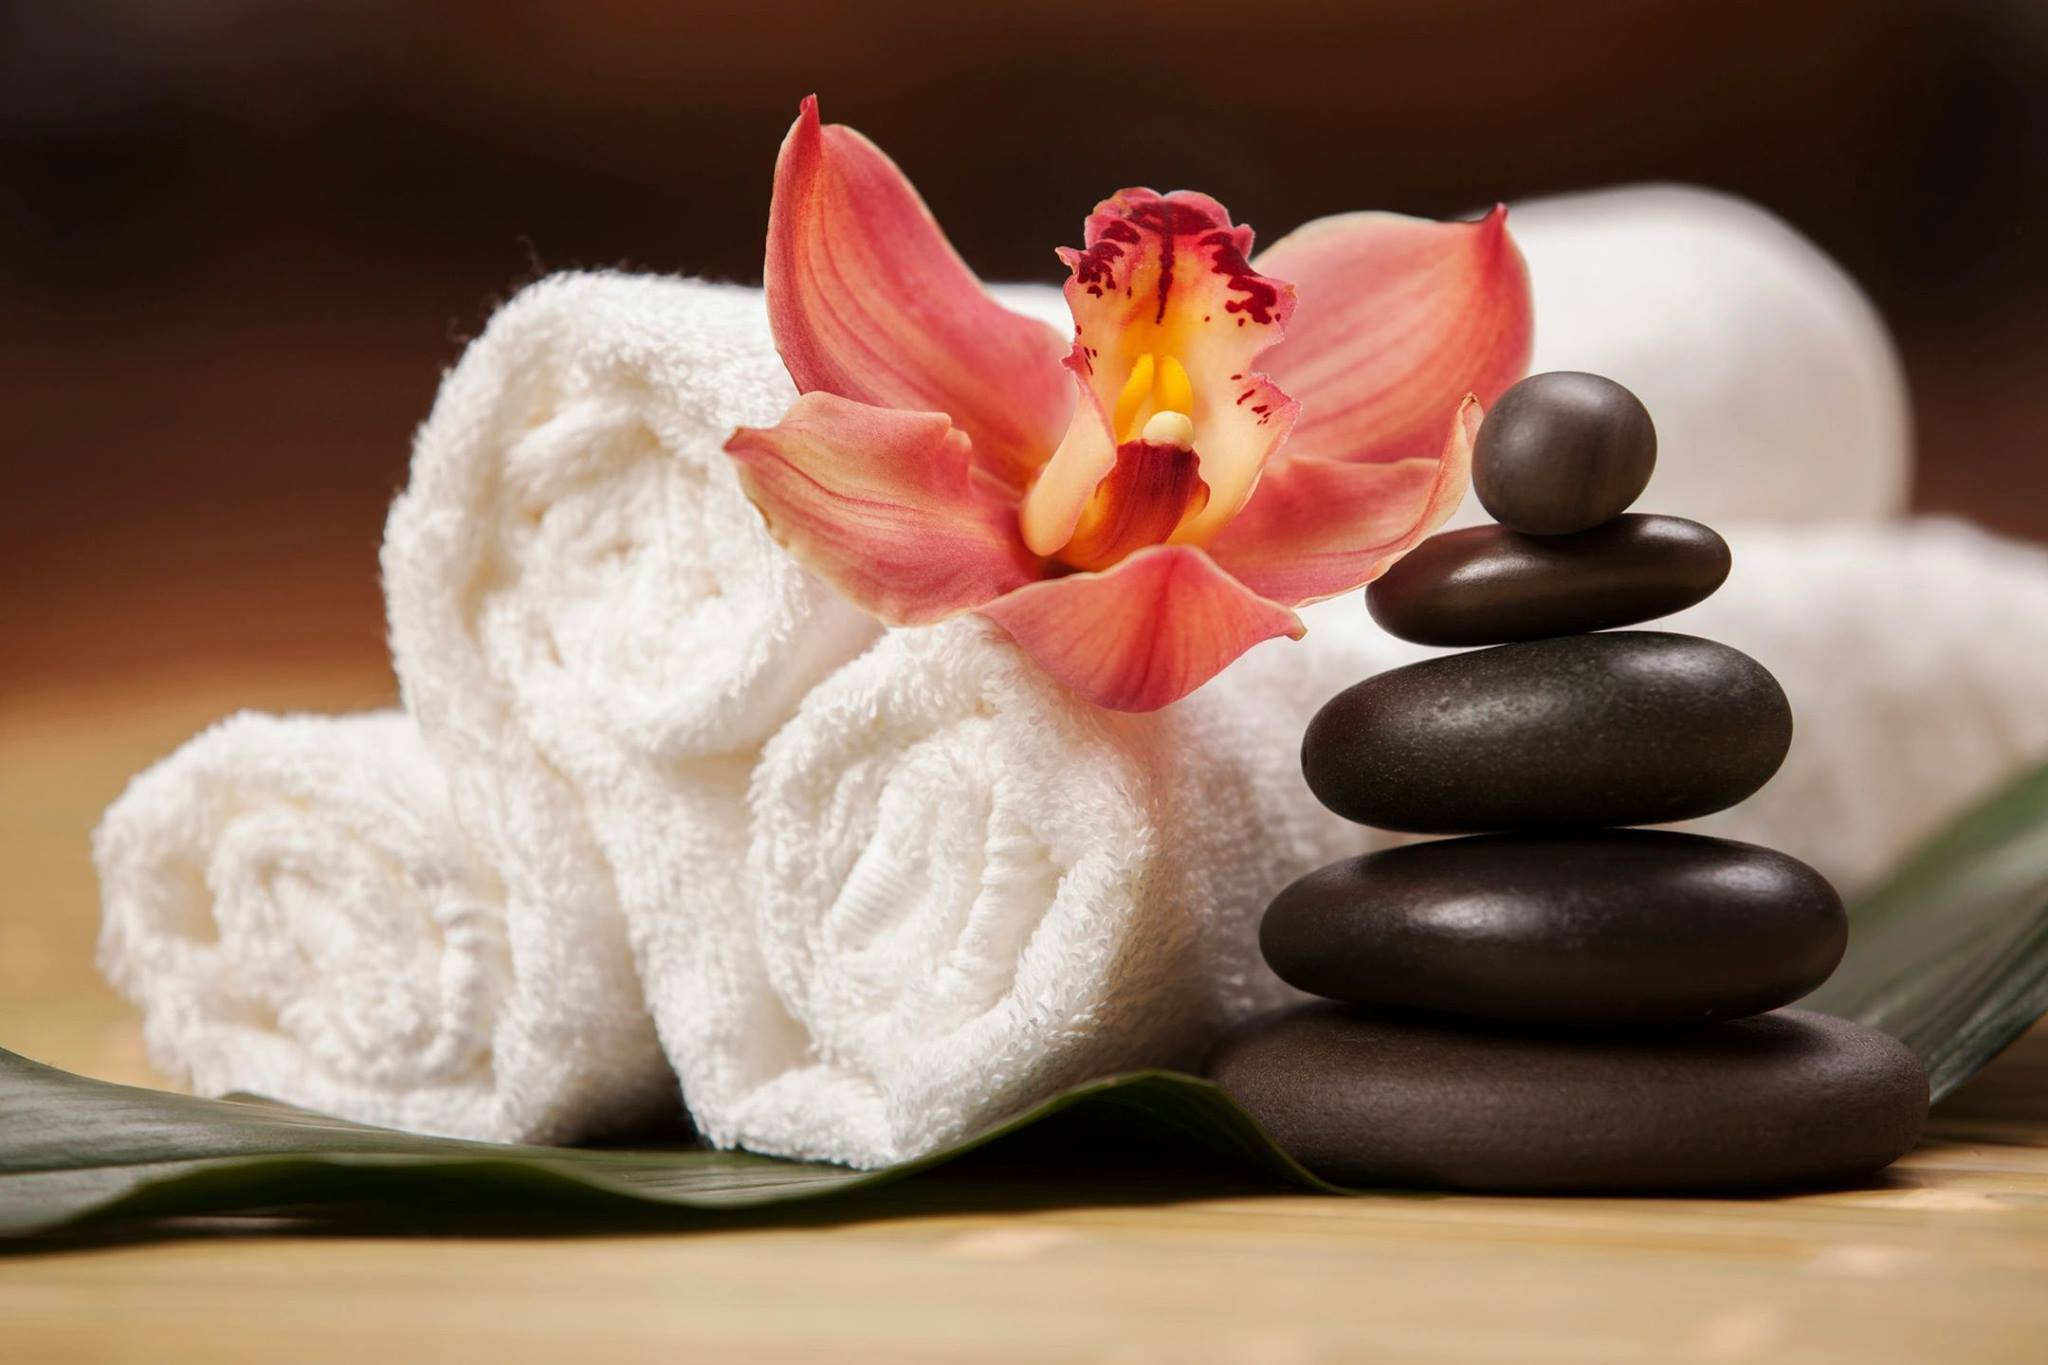 Sol Wellness, A Massage and Reflexology Center, Now Offers Monthly and Yearly Membership Packages To Better Serve Phoenix Community